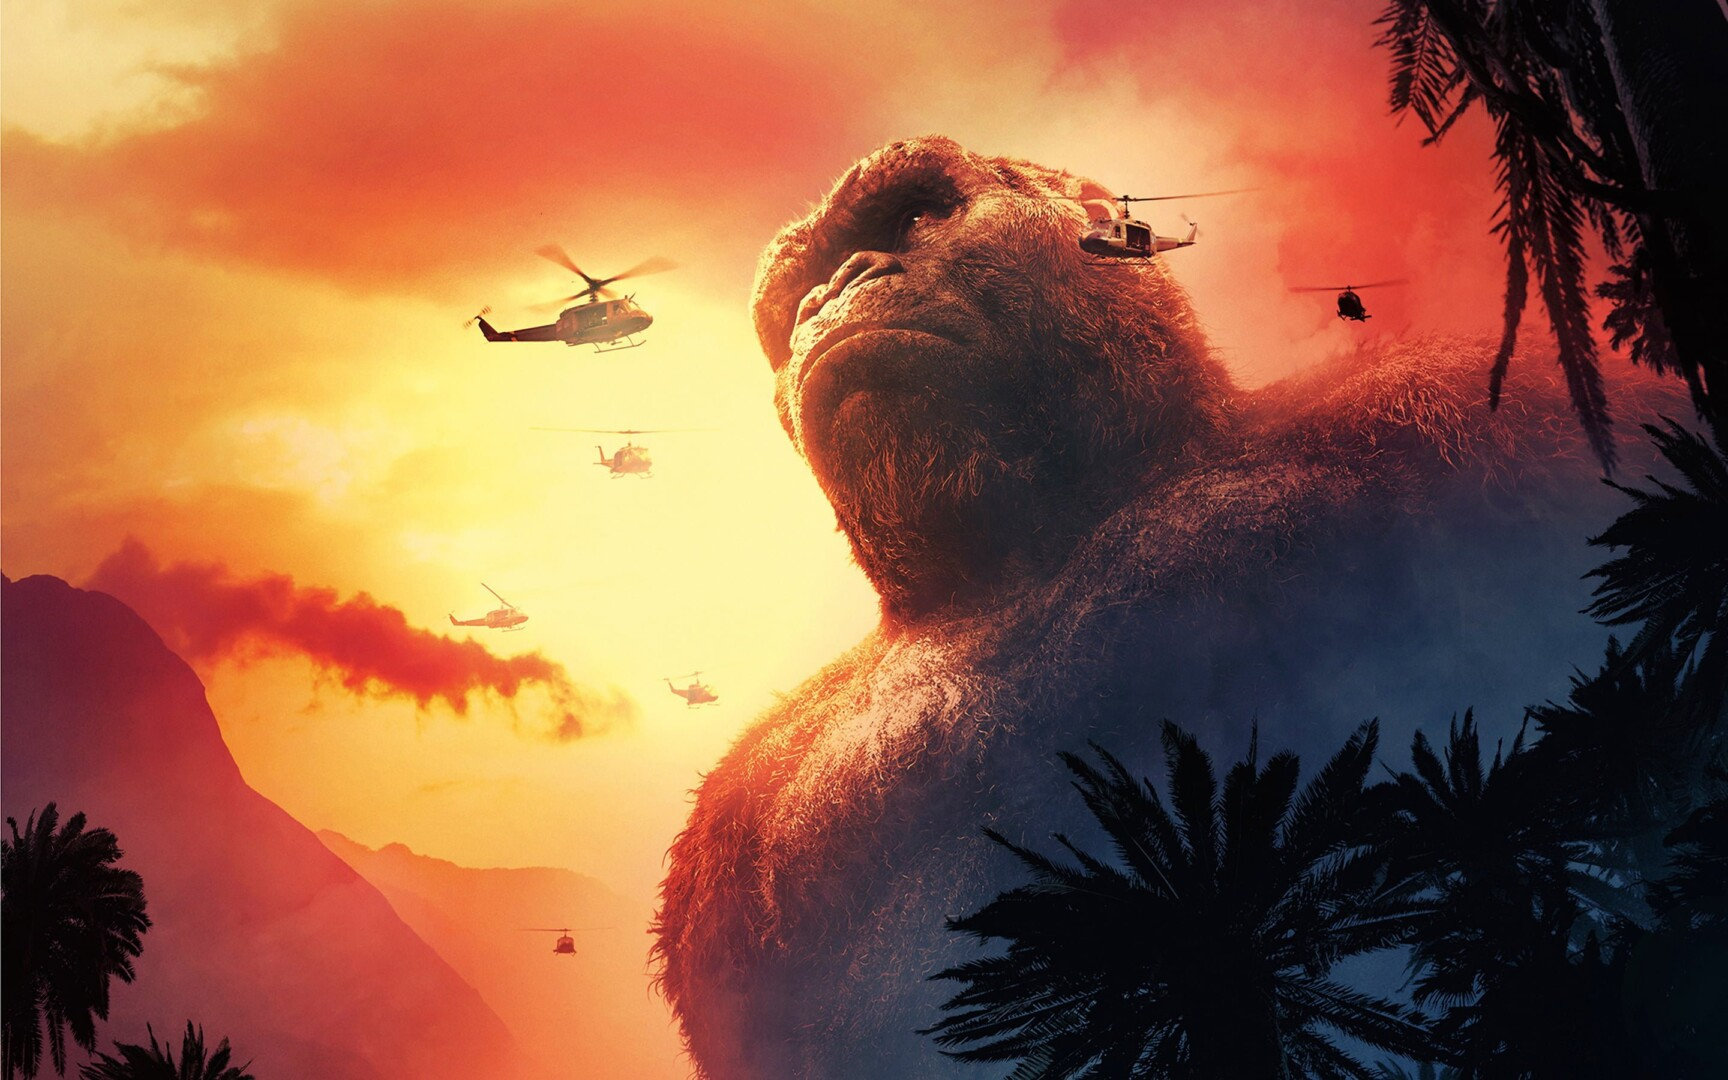 Godzilla Vs Kong - Chi Vincerà? 4 - Hynerd.it